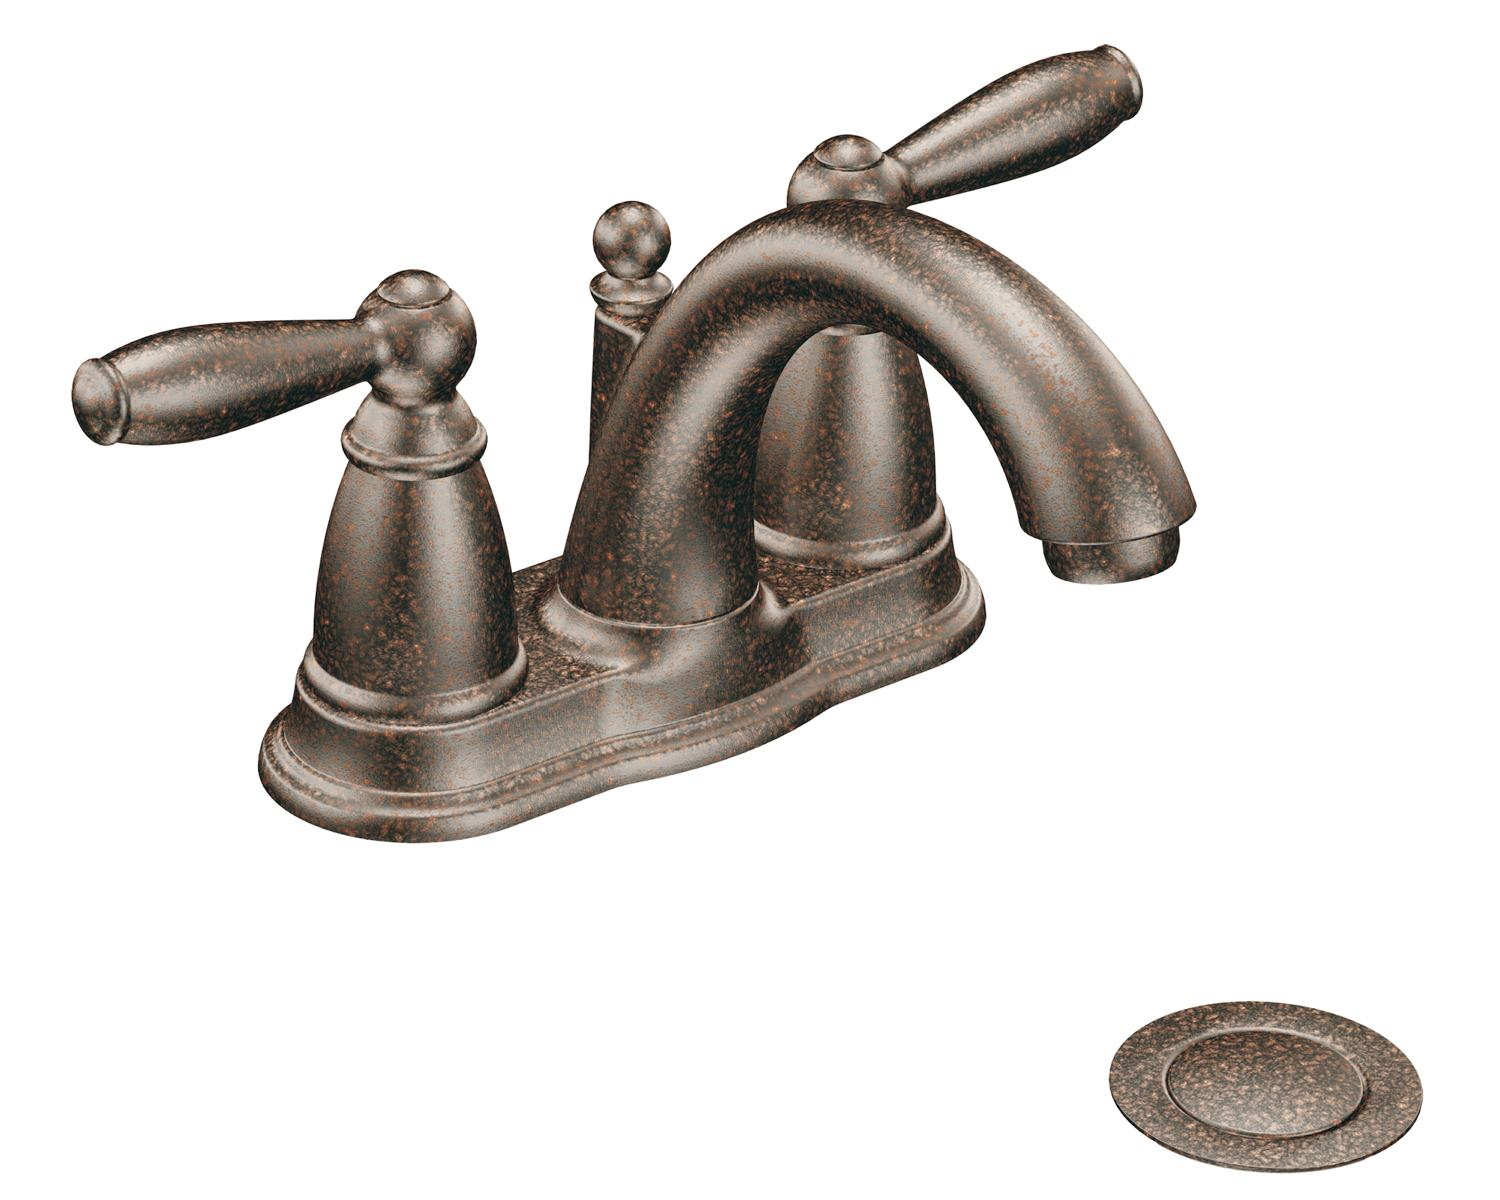 Moen 6610orb brantford 2 handle lavatory faucet with drain assembly oil rubbed bronze not ca Amazon bathroom faucets moen